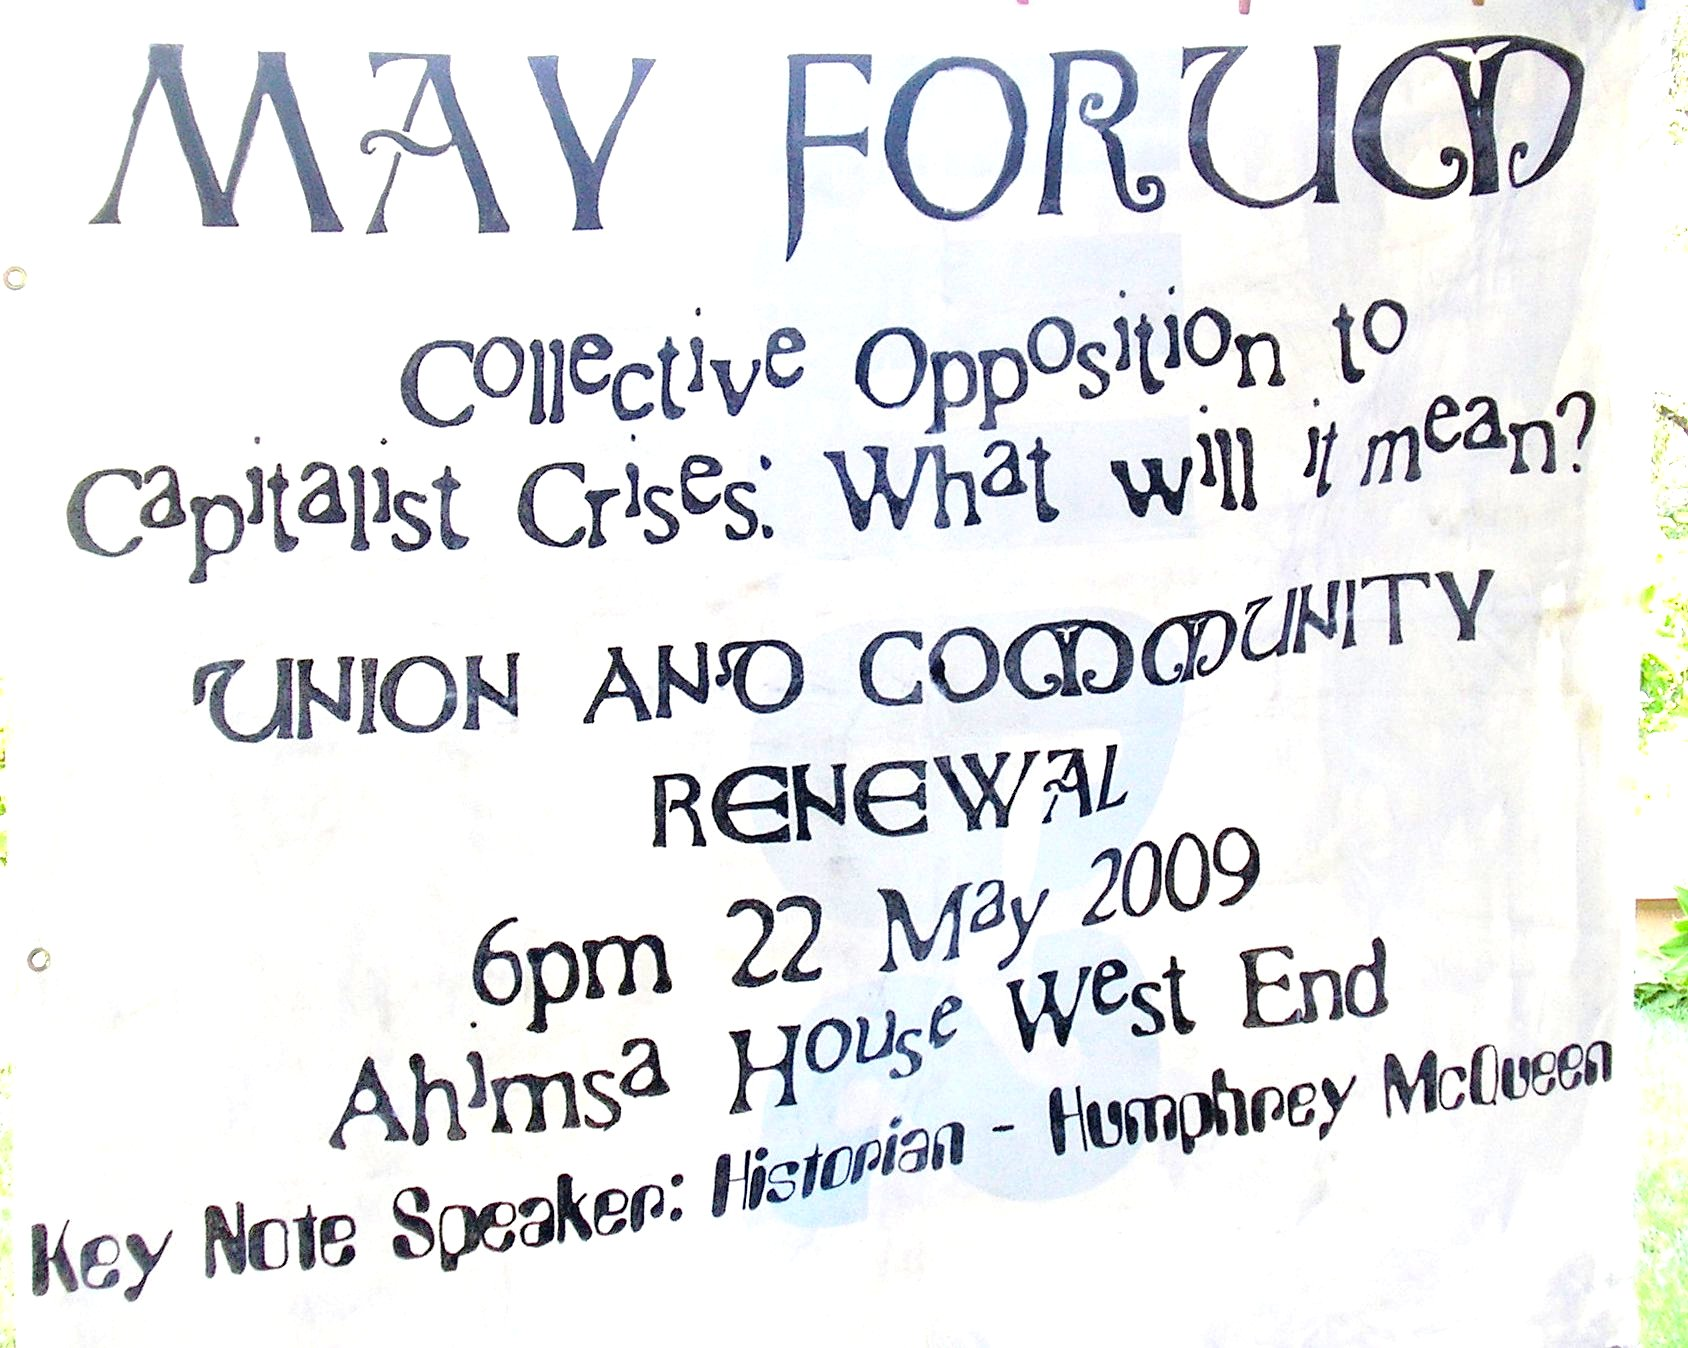 May Forum: Collective Resistance to the crisis, what will it mean?